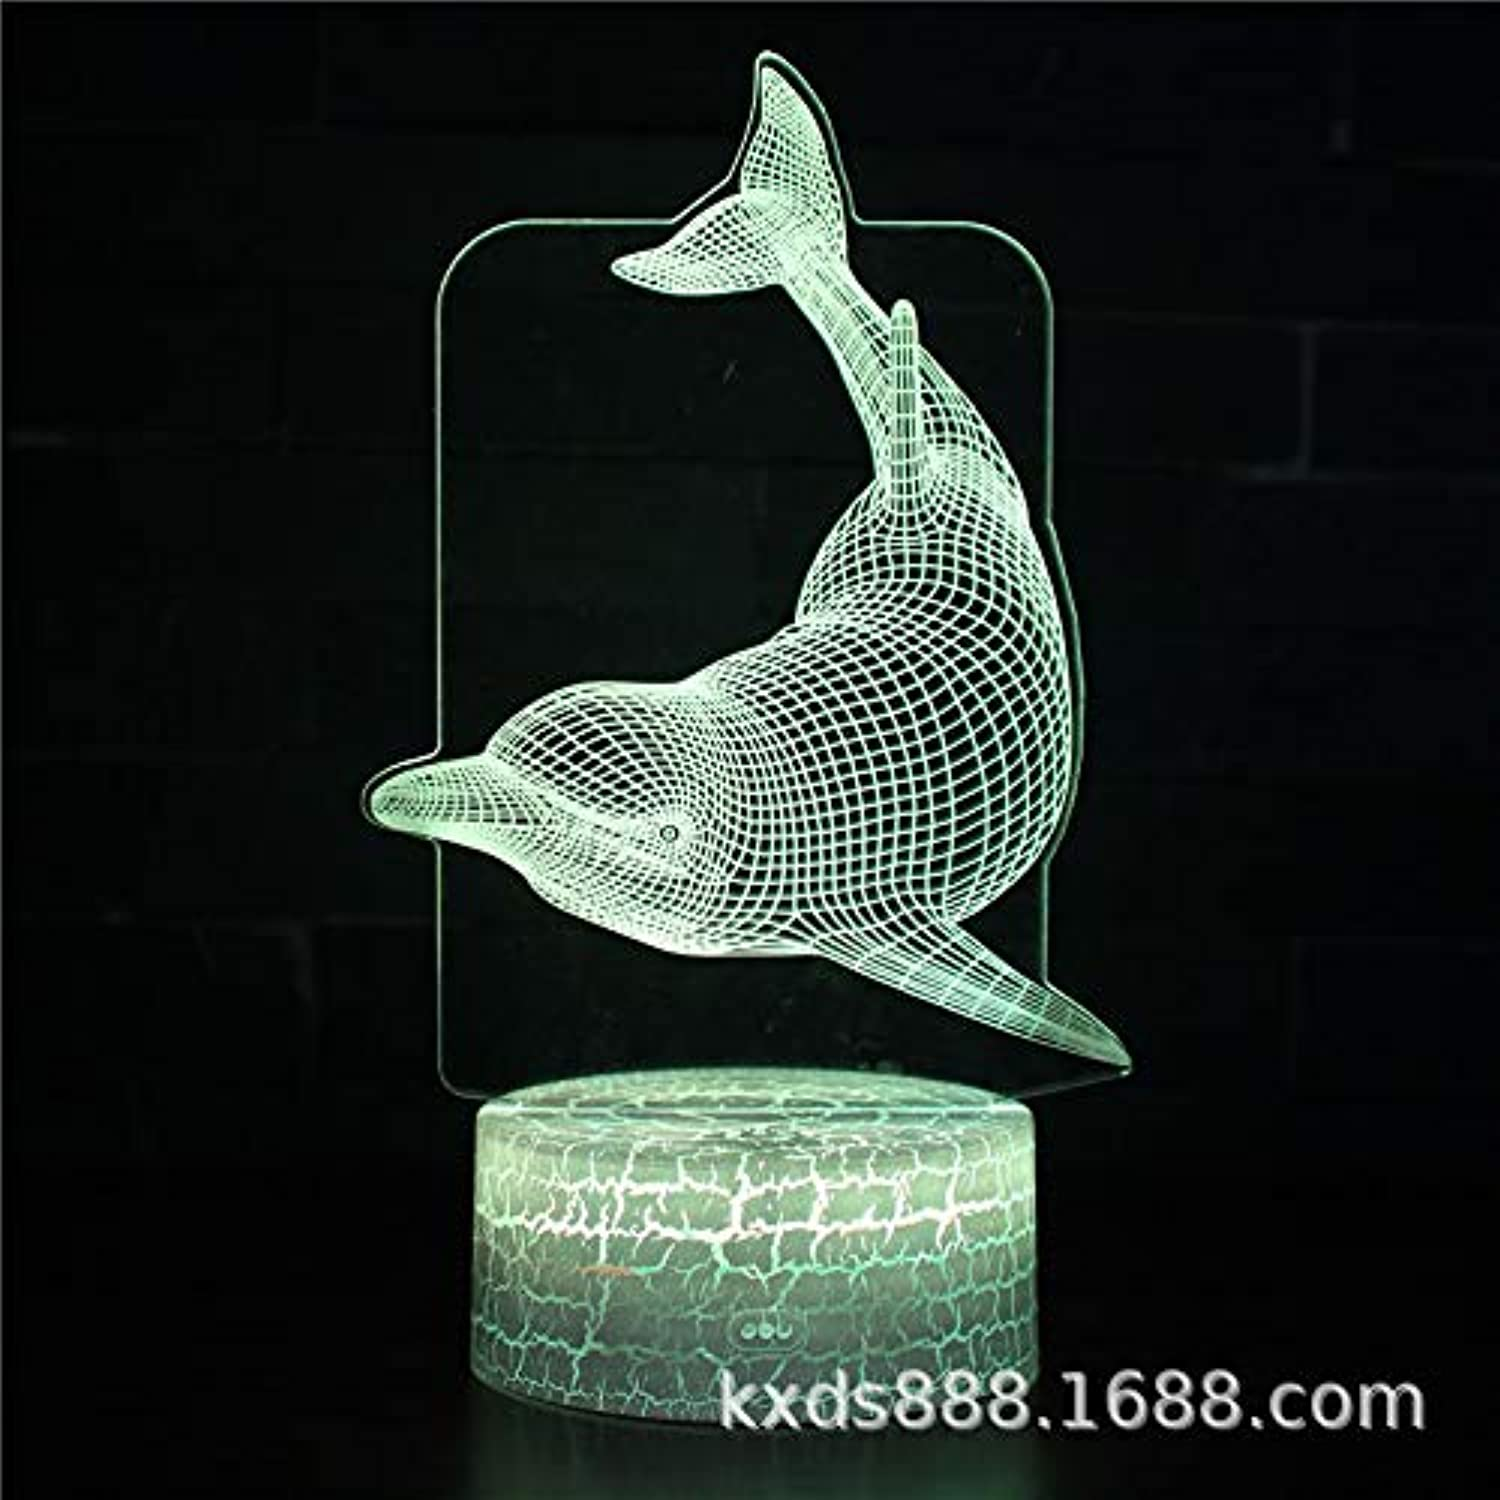 DZXGY Inns hot Dolphin 7 color Illusion led Touch Night Light 3D Touch Screen Control led Gradient Night Light x-mas Gift Bedroom Decoration,H